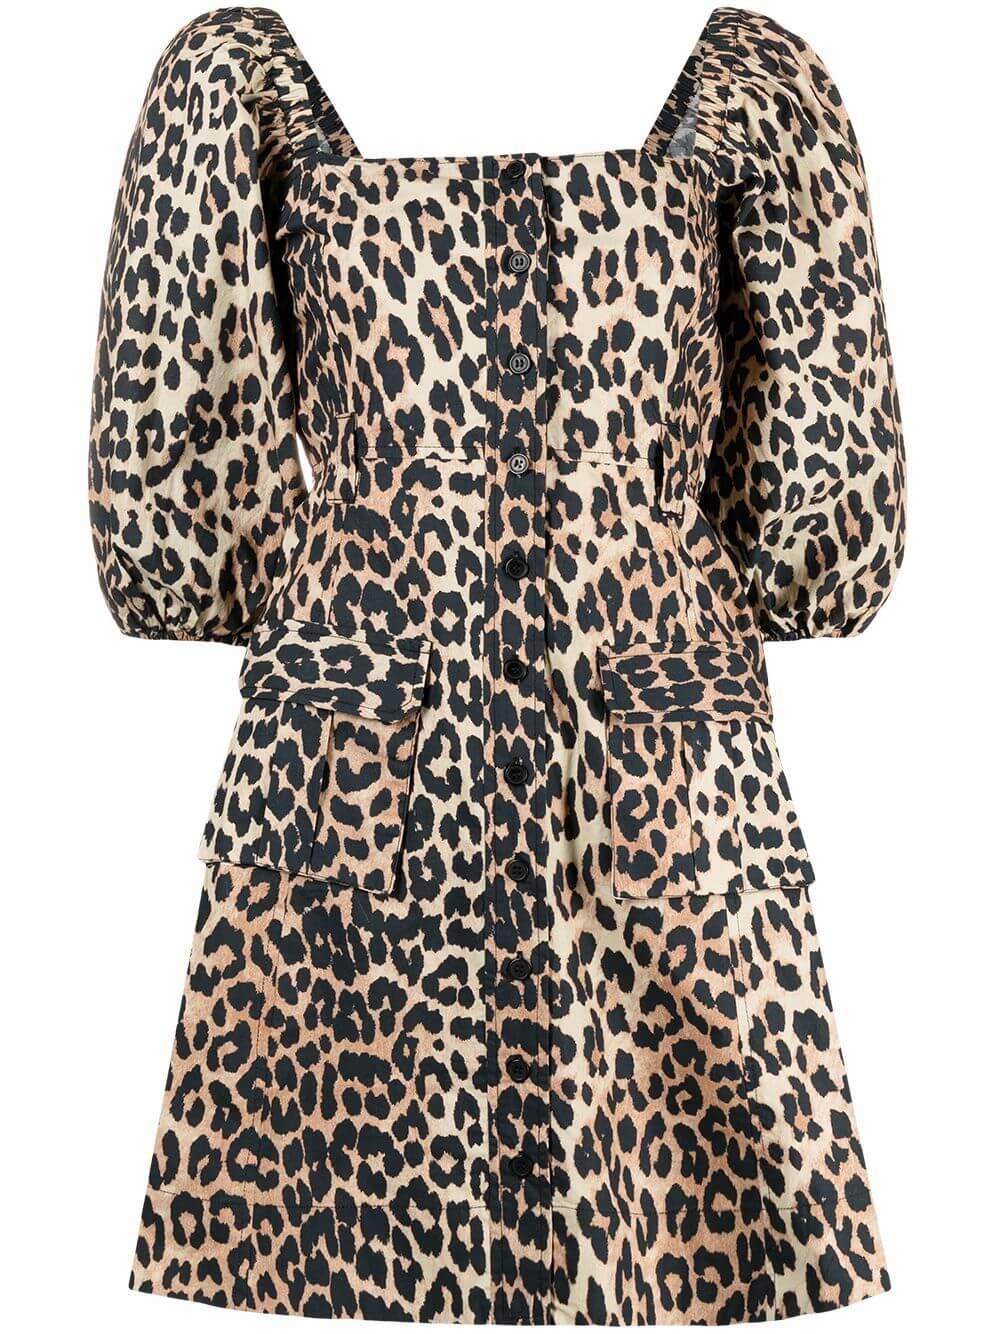 Leopard Poplin Dress Item # F5655